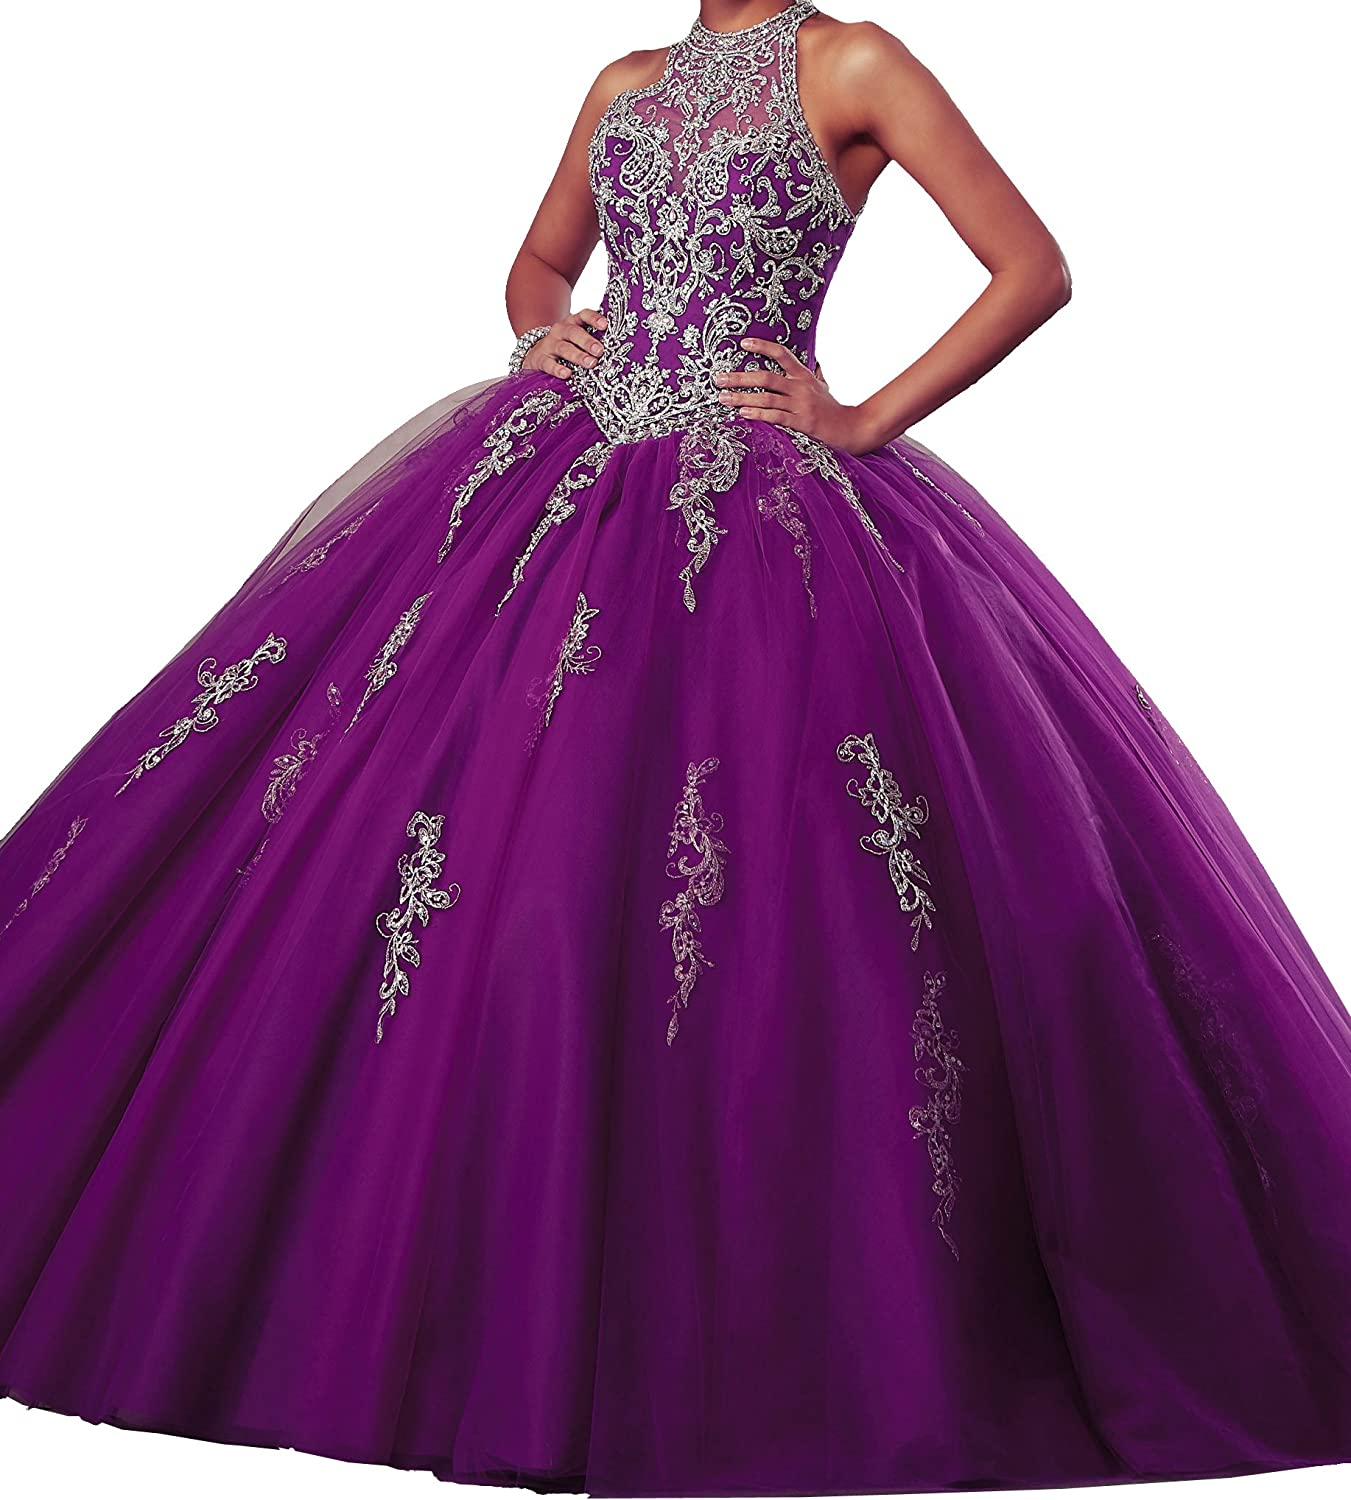 PuTao Women's Illusion Neckline Evening Party Prom Quinceanera Dresses